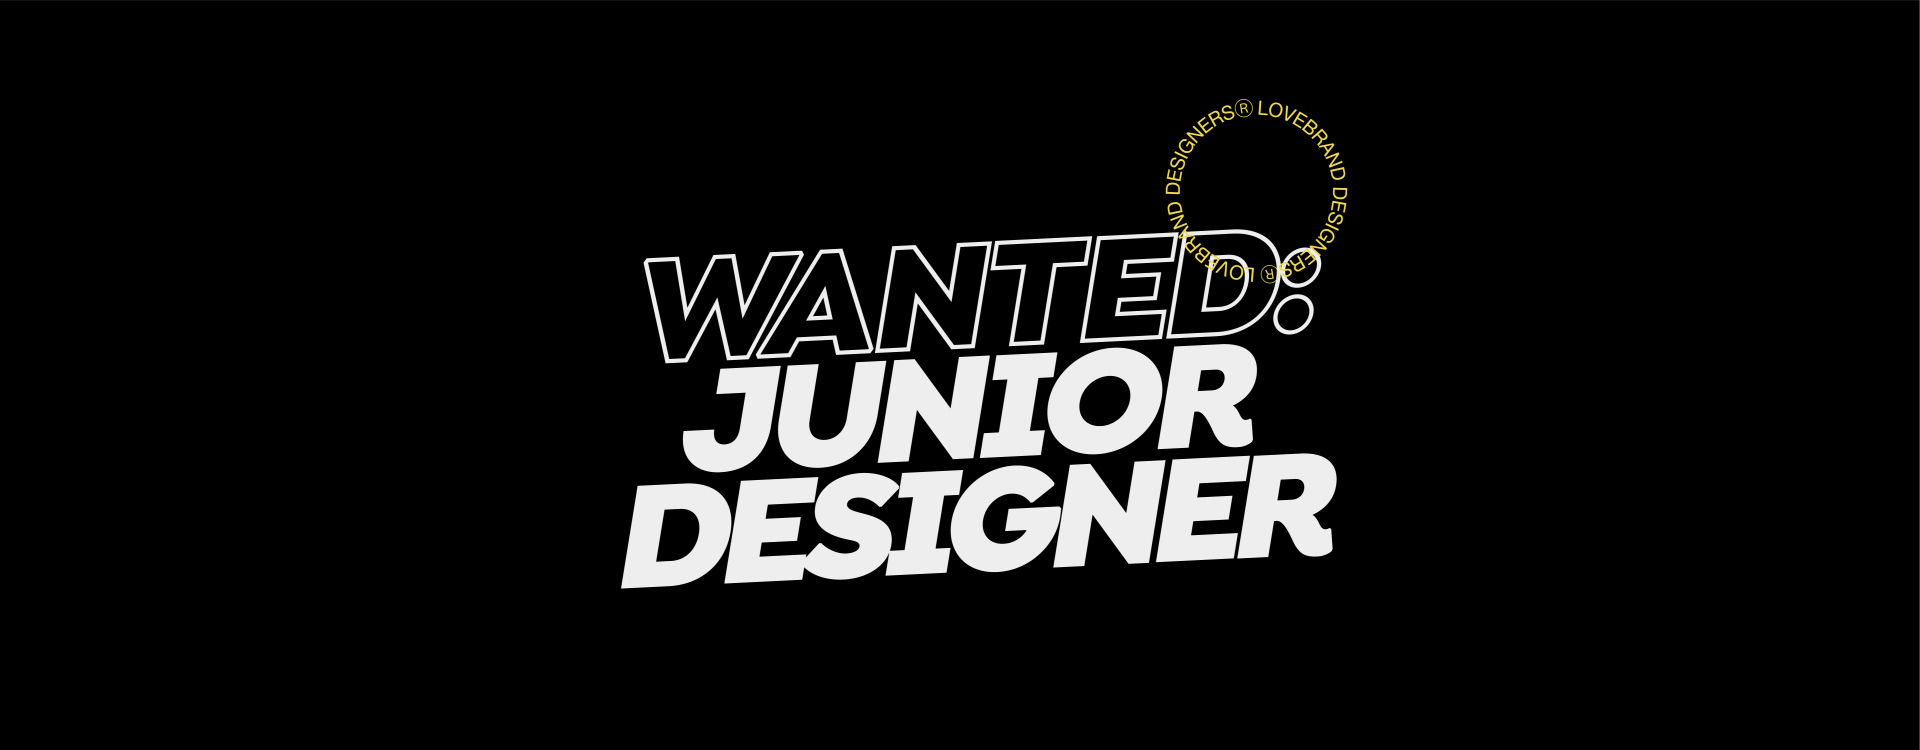 Wanted-JuniorDesigner@3x